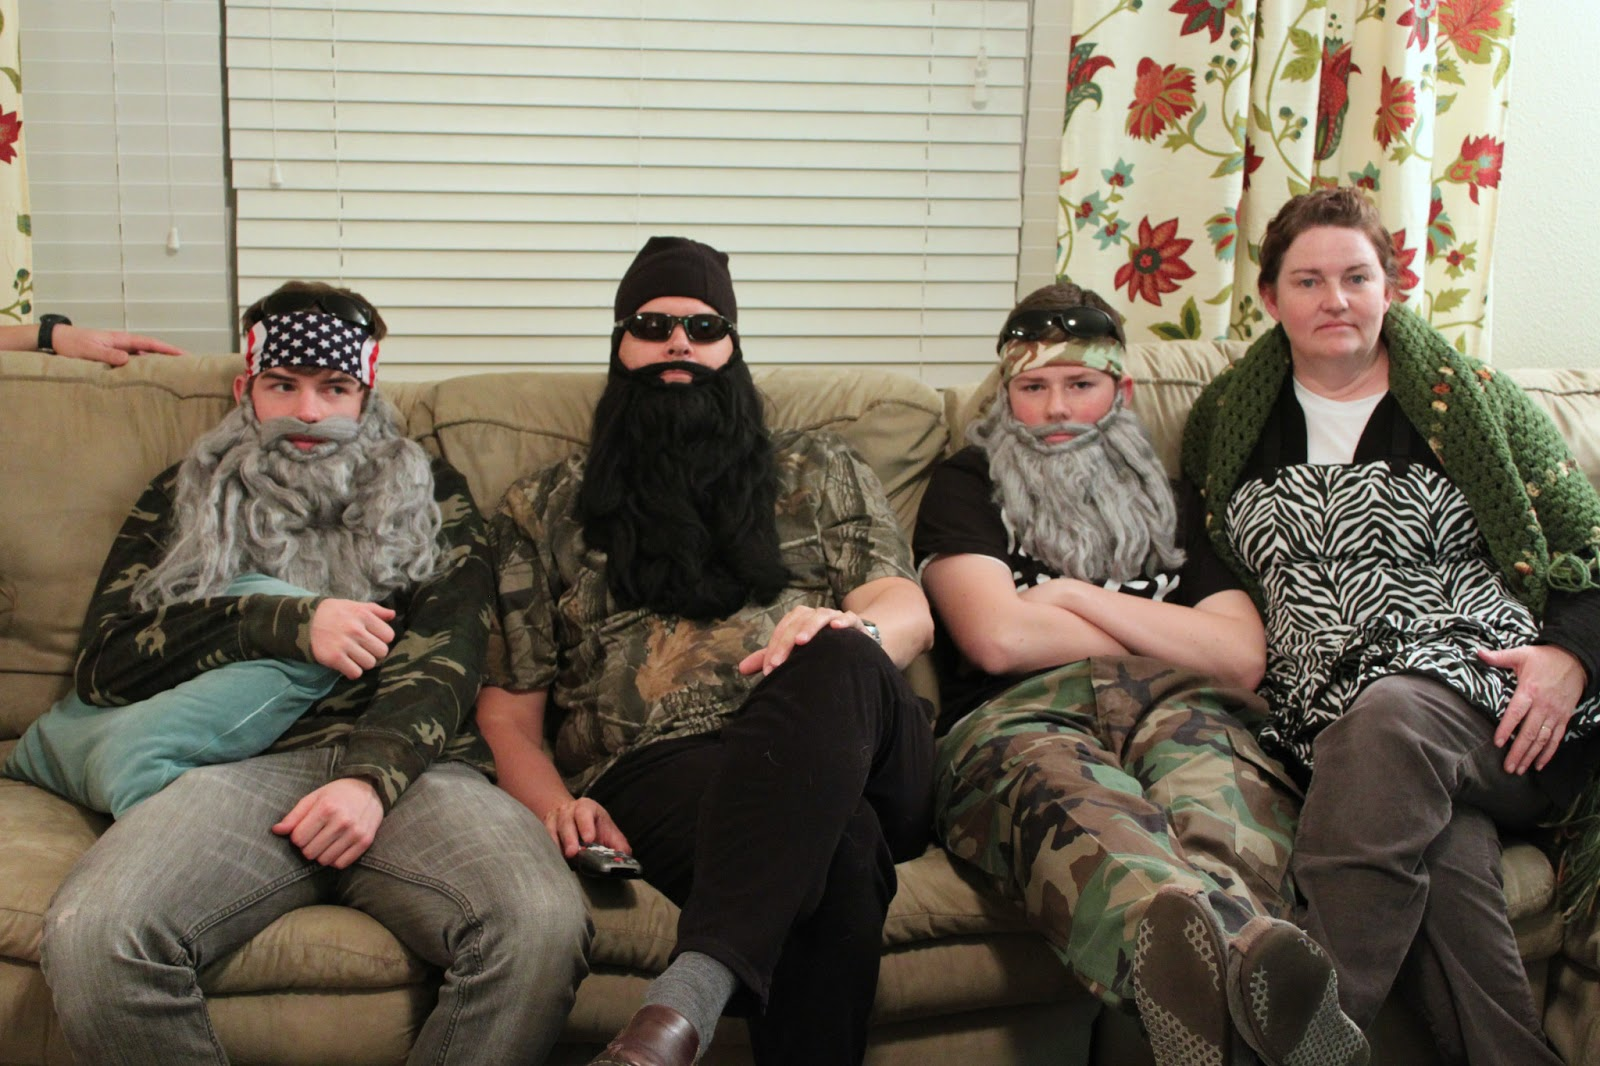 Vacuuming in high heels & pearls: Duck Dynasty Party